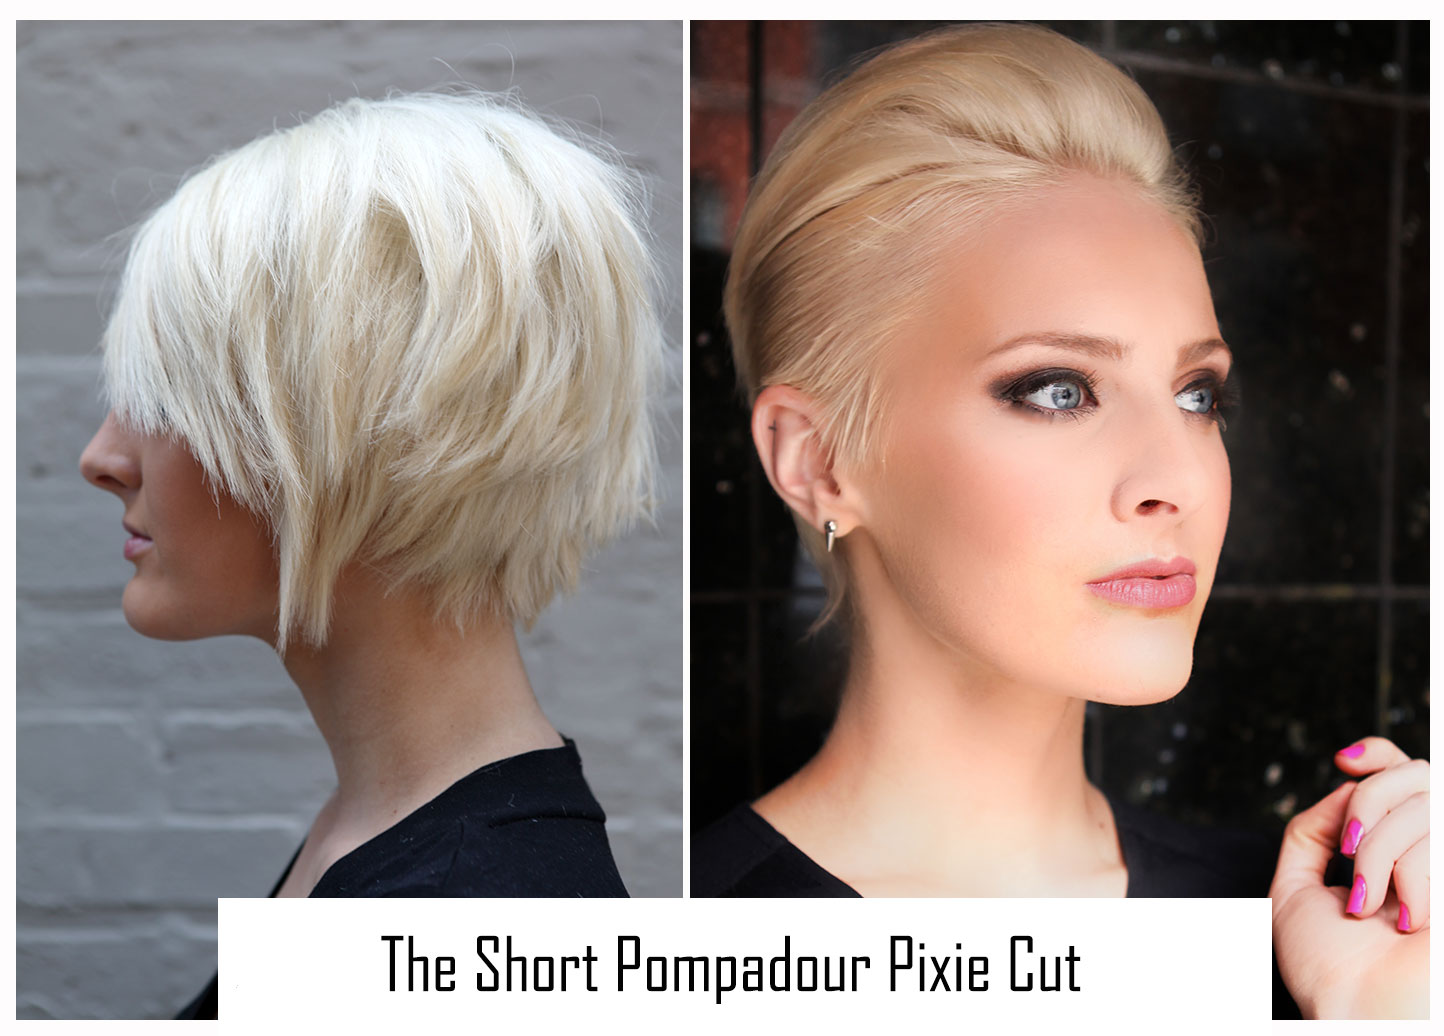 TRY IT: Pixie Cut Styling Idea - The Slick and Short Pompadour